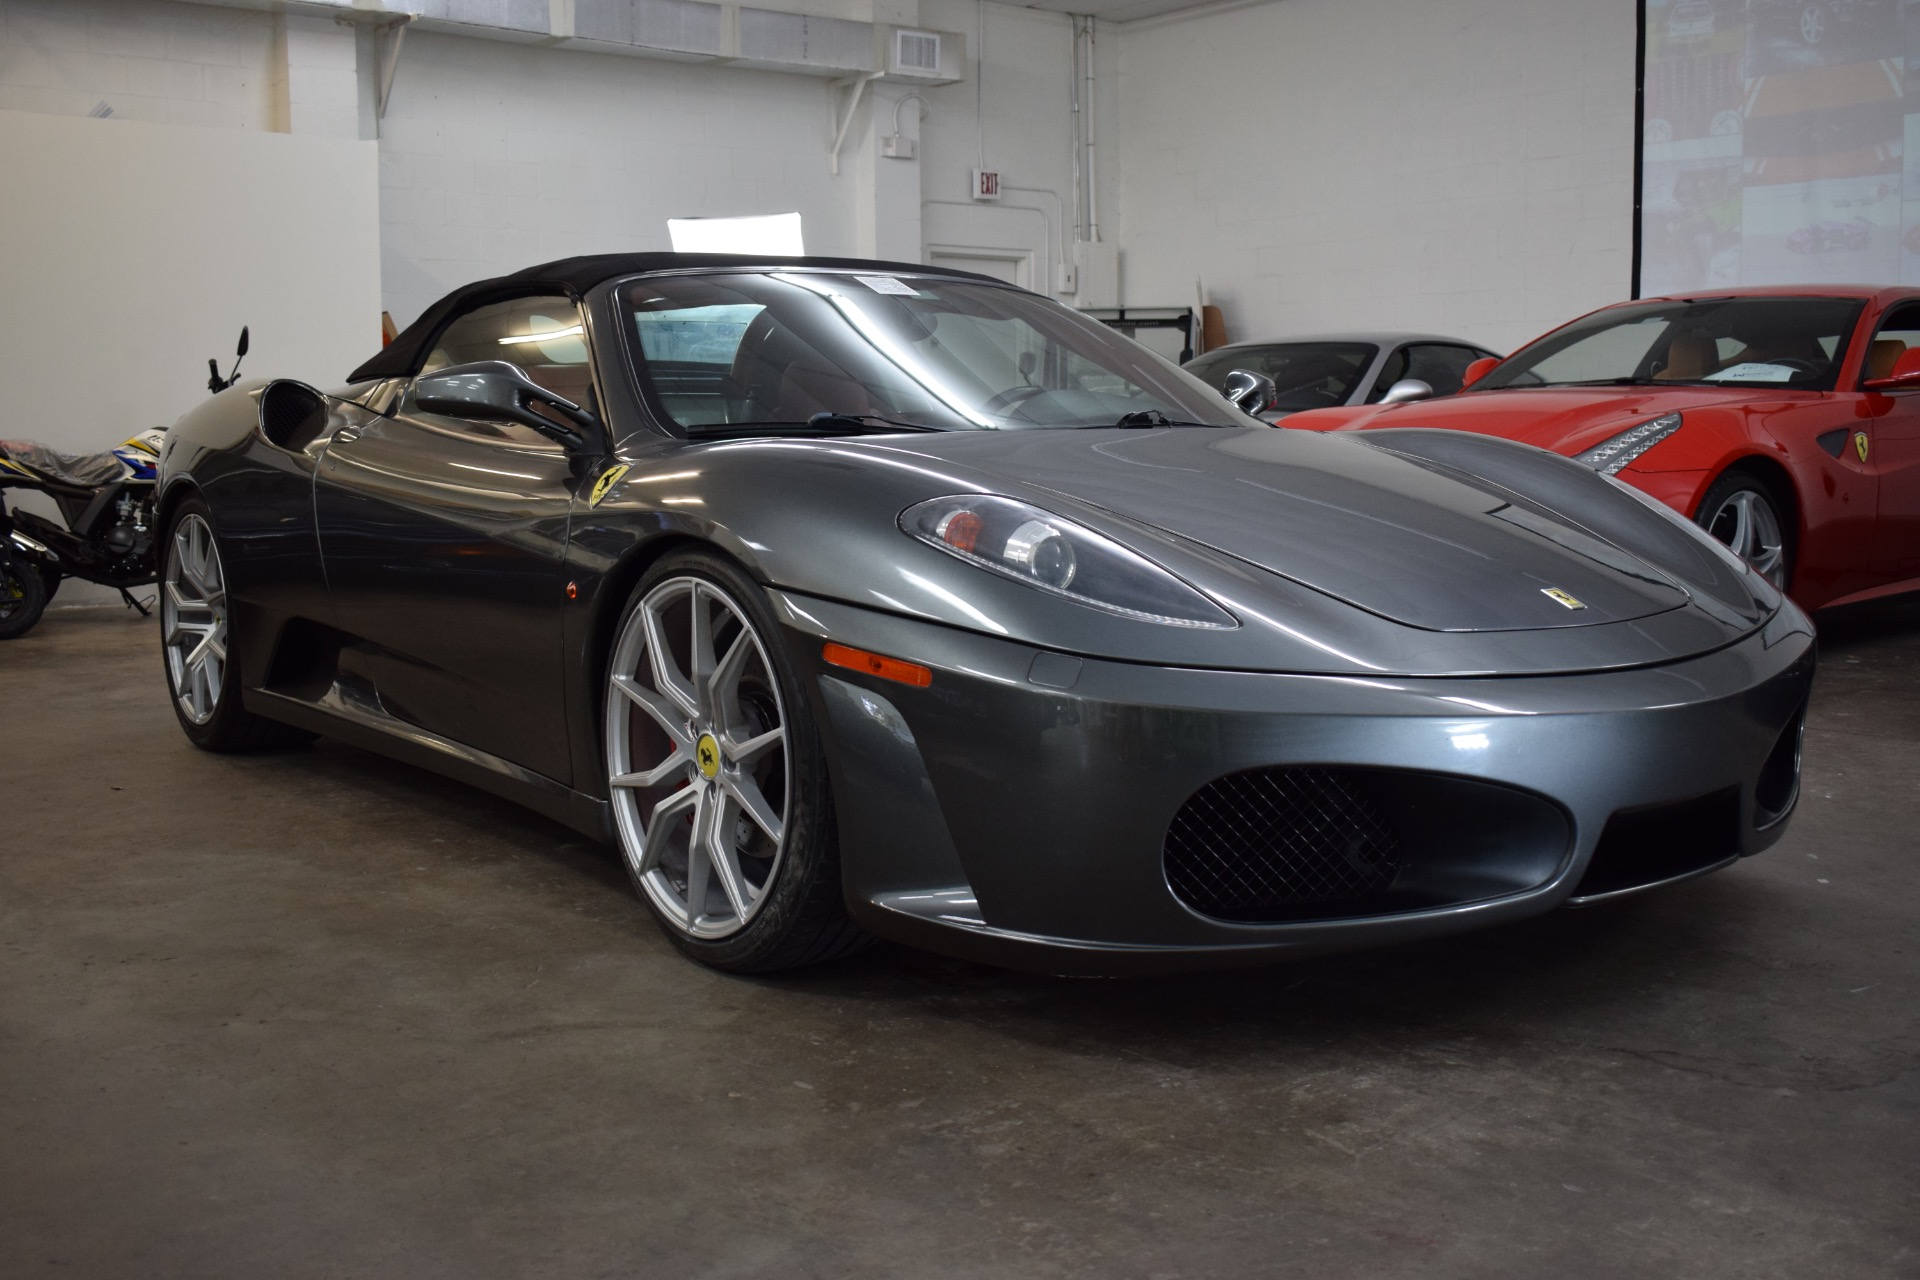 Used 2006 Ferrari F430 Spider Convertible 2D for sale Sold at Track and Field Motors in Safety Harbor FL 34695 1